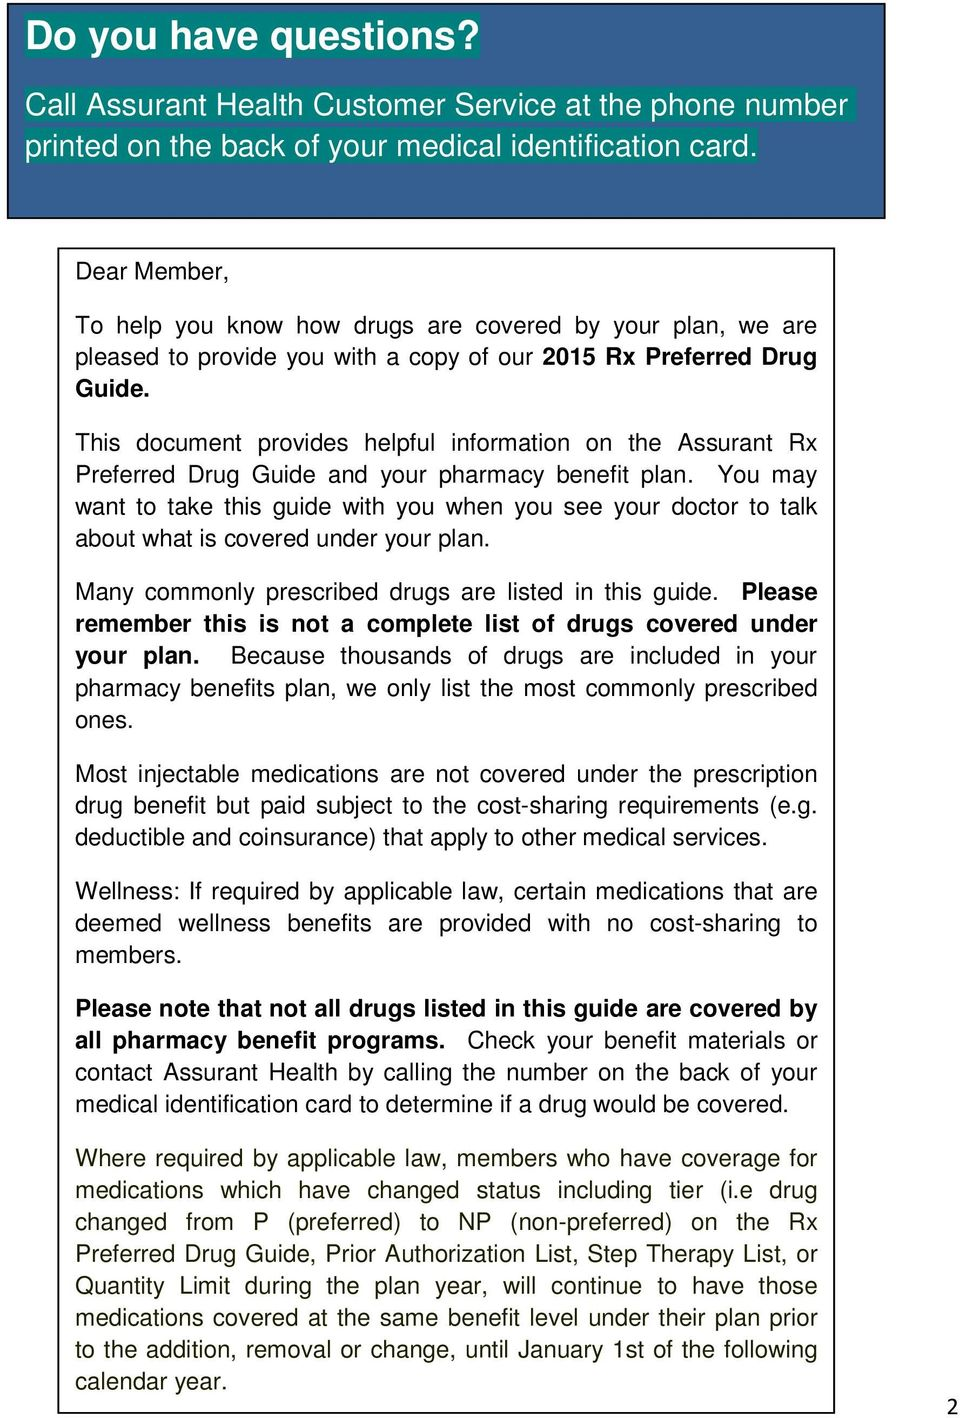 This document provides helpful information on the Assurant Rx Preferred Drug Guide and your pharmacy benefit plan.